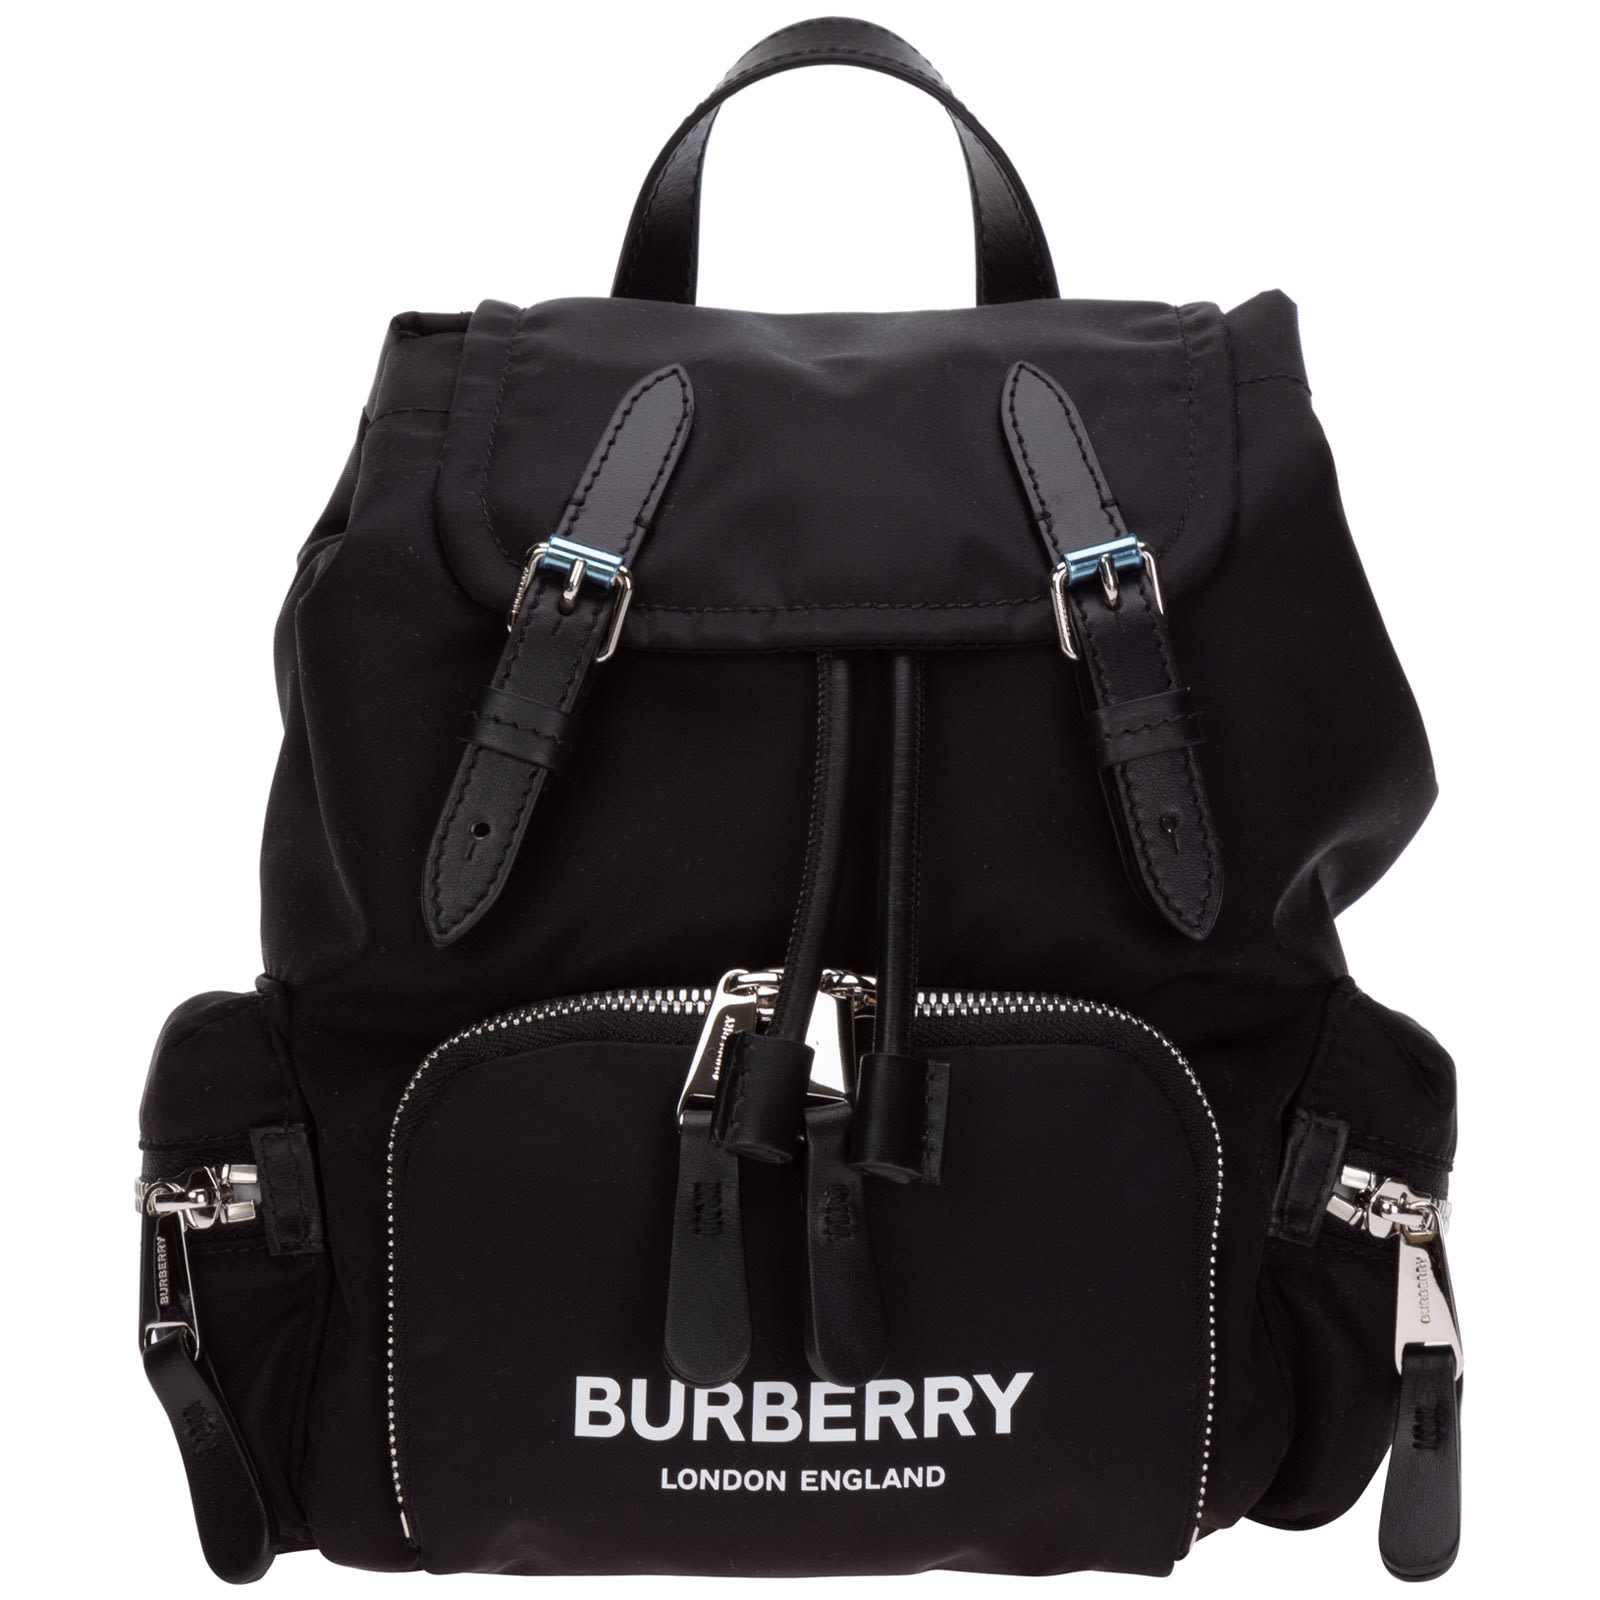 Burberry 1927 Backpack